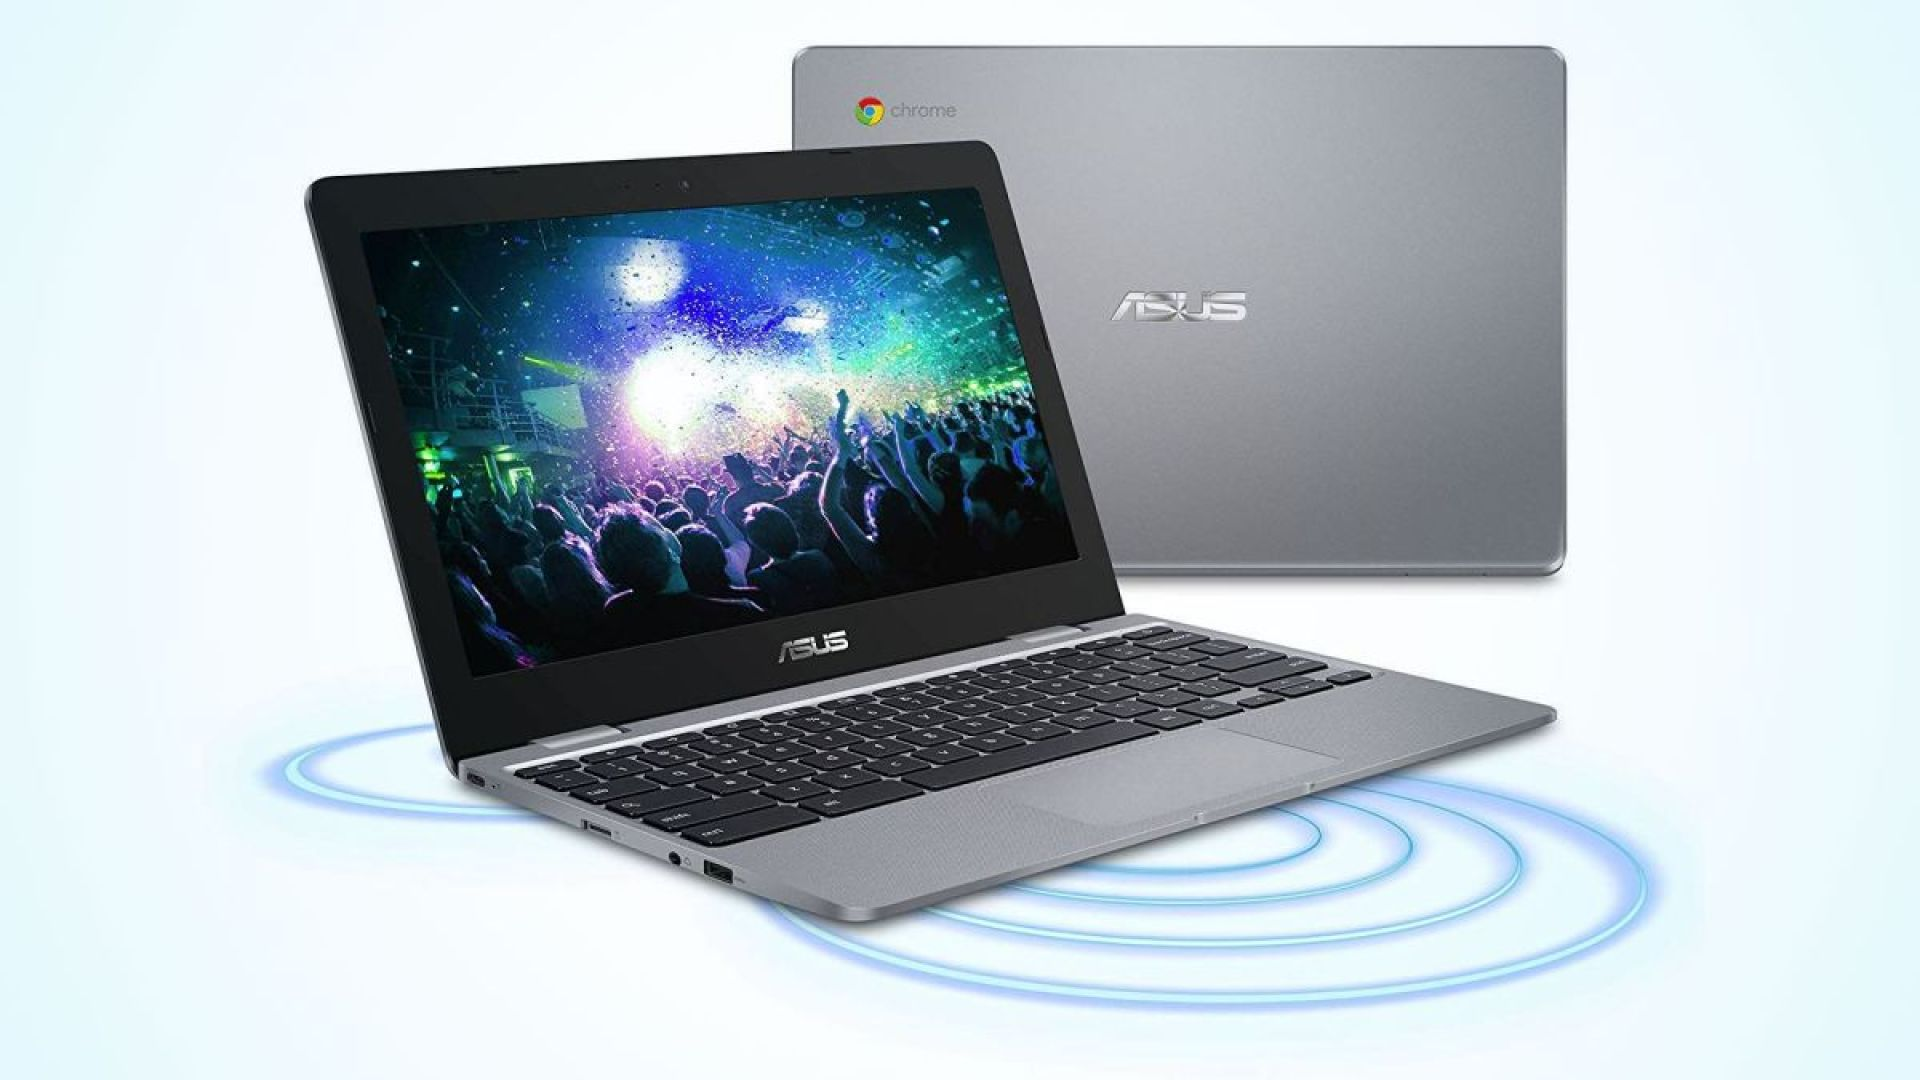 Get £80 off this Asus Chromebook at Amazon